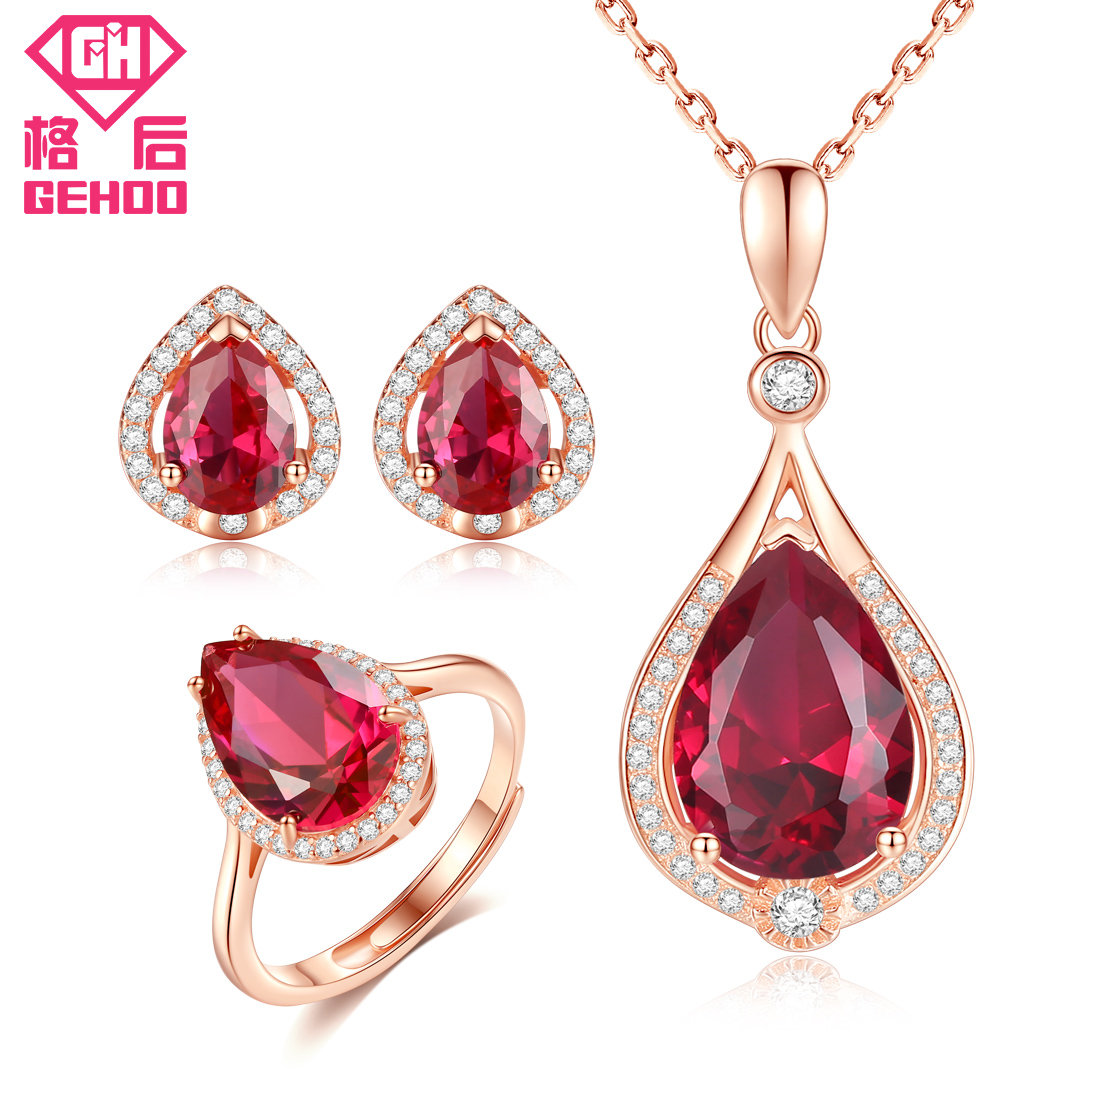 GEHOO 925 Sterling Silver Fine Jewelry Set Ruby Paved CZ Pendant Water Drop Design Women Charm Necklace & Stud Earrings & Ring a suit of chic faux ruby water drop necklace ring bracelet and earrings for women